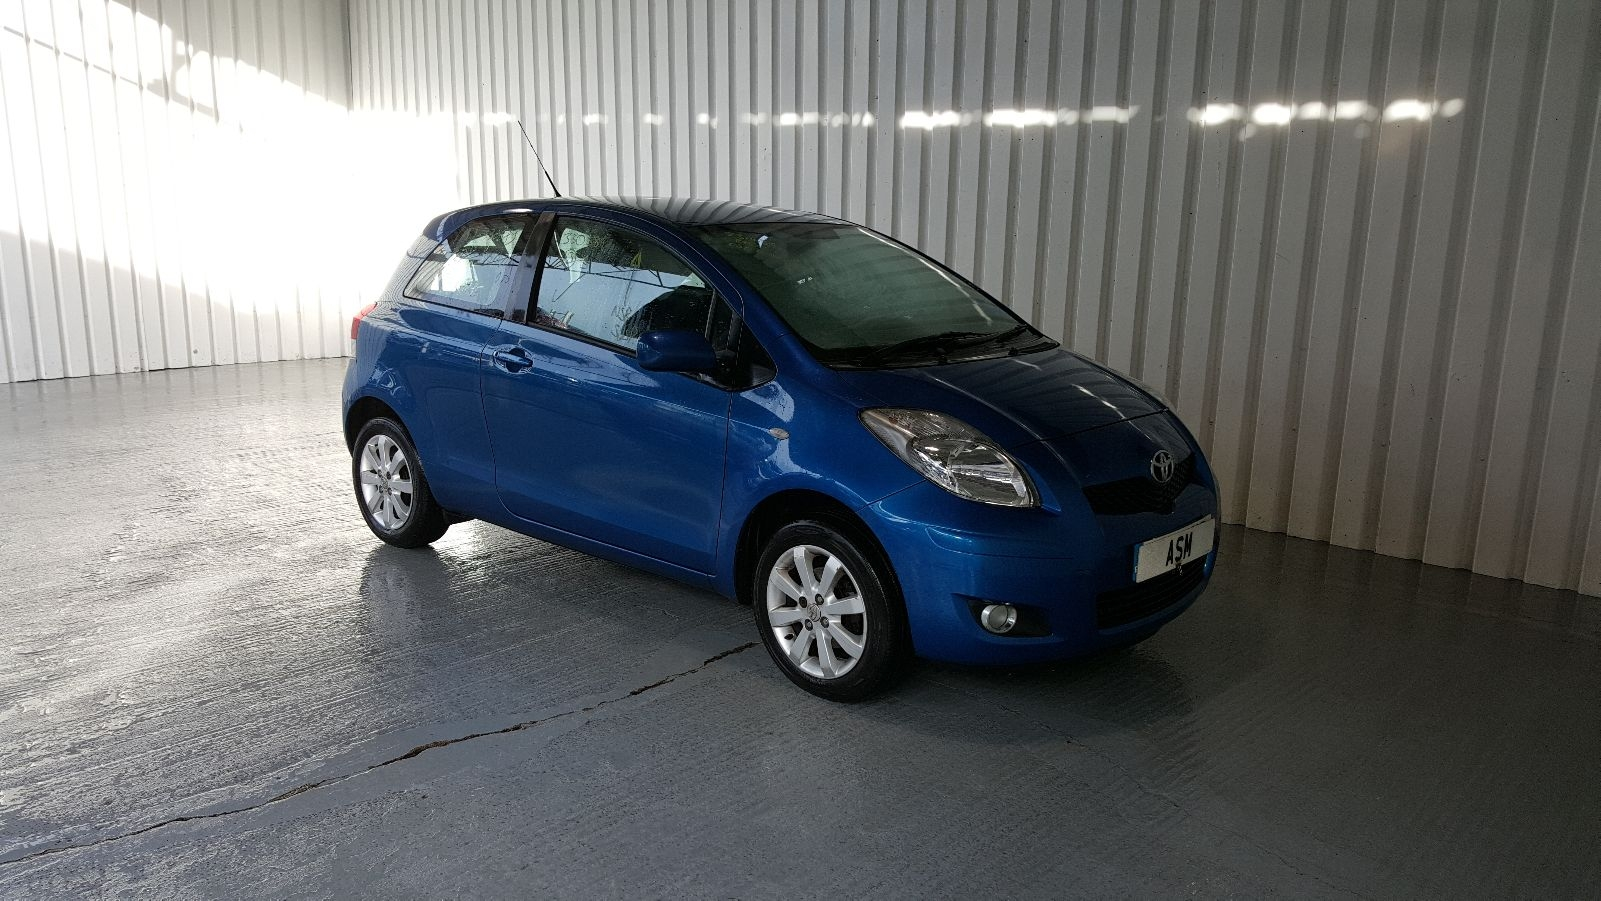 Image for a 2011 Toyota Yaris 1.3 Petrol 1NR-FE Engine